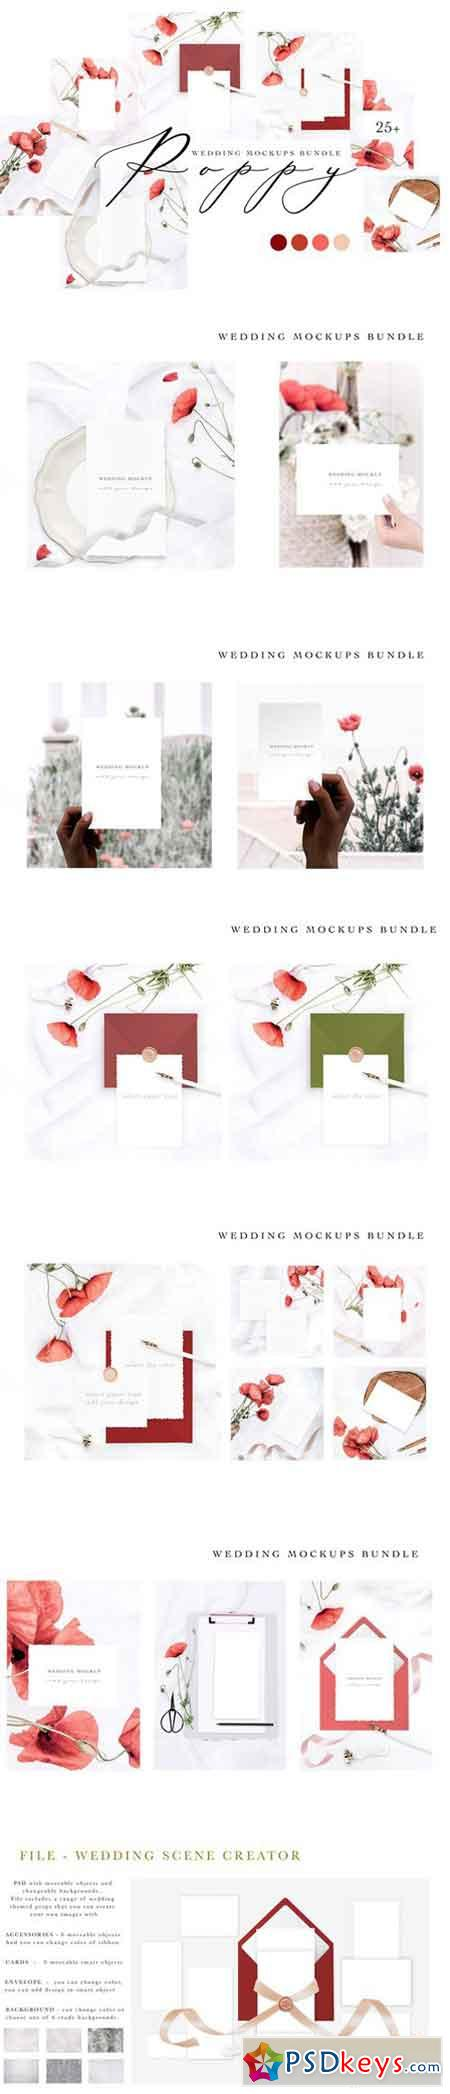 POPPY WEDDING MOCKUPS BUNDLE 2670193